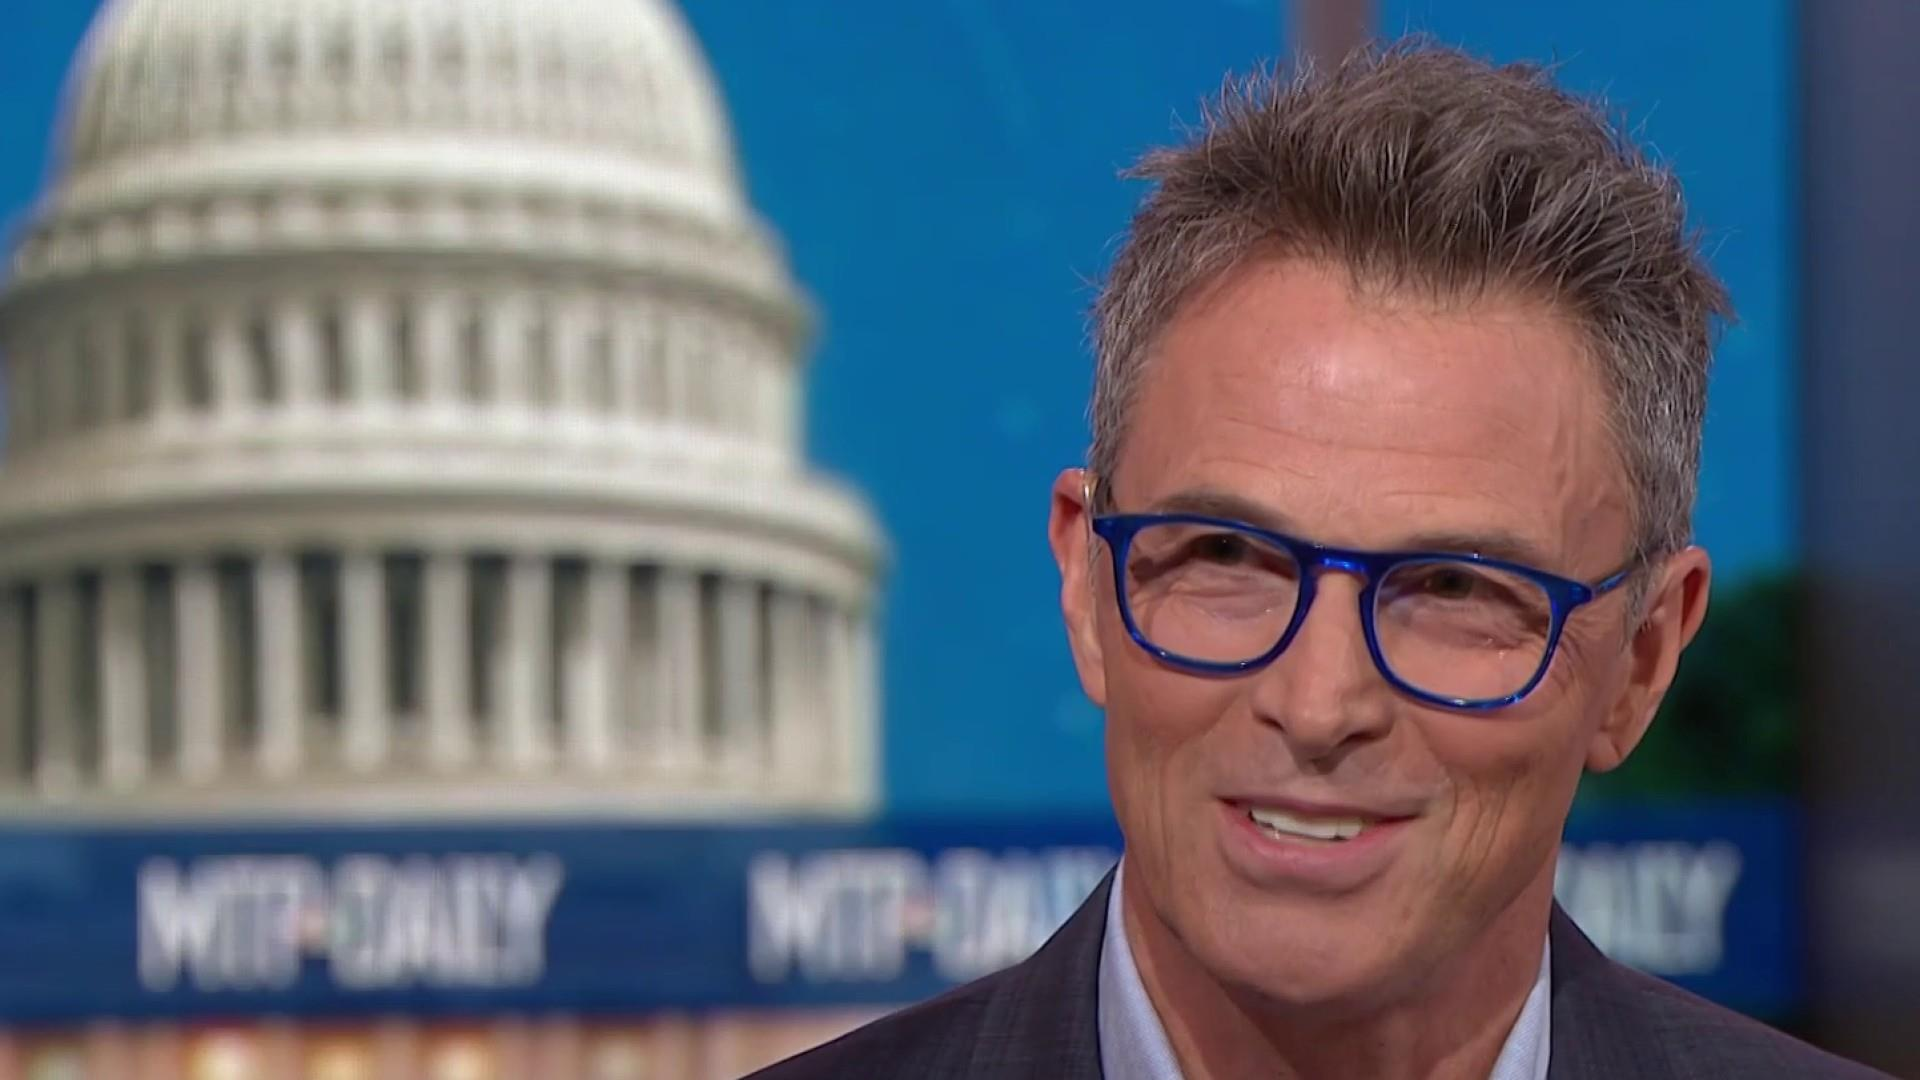 Full Daly: Actor Tim Daly joins MTP Daily to talk about the 2020 race and support for the arts